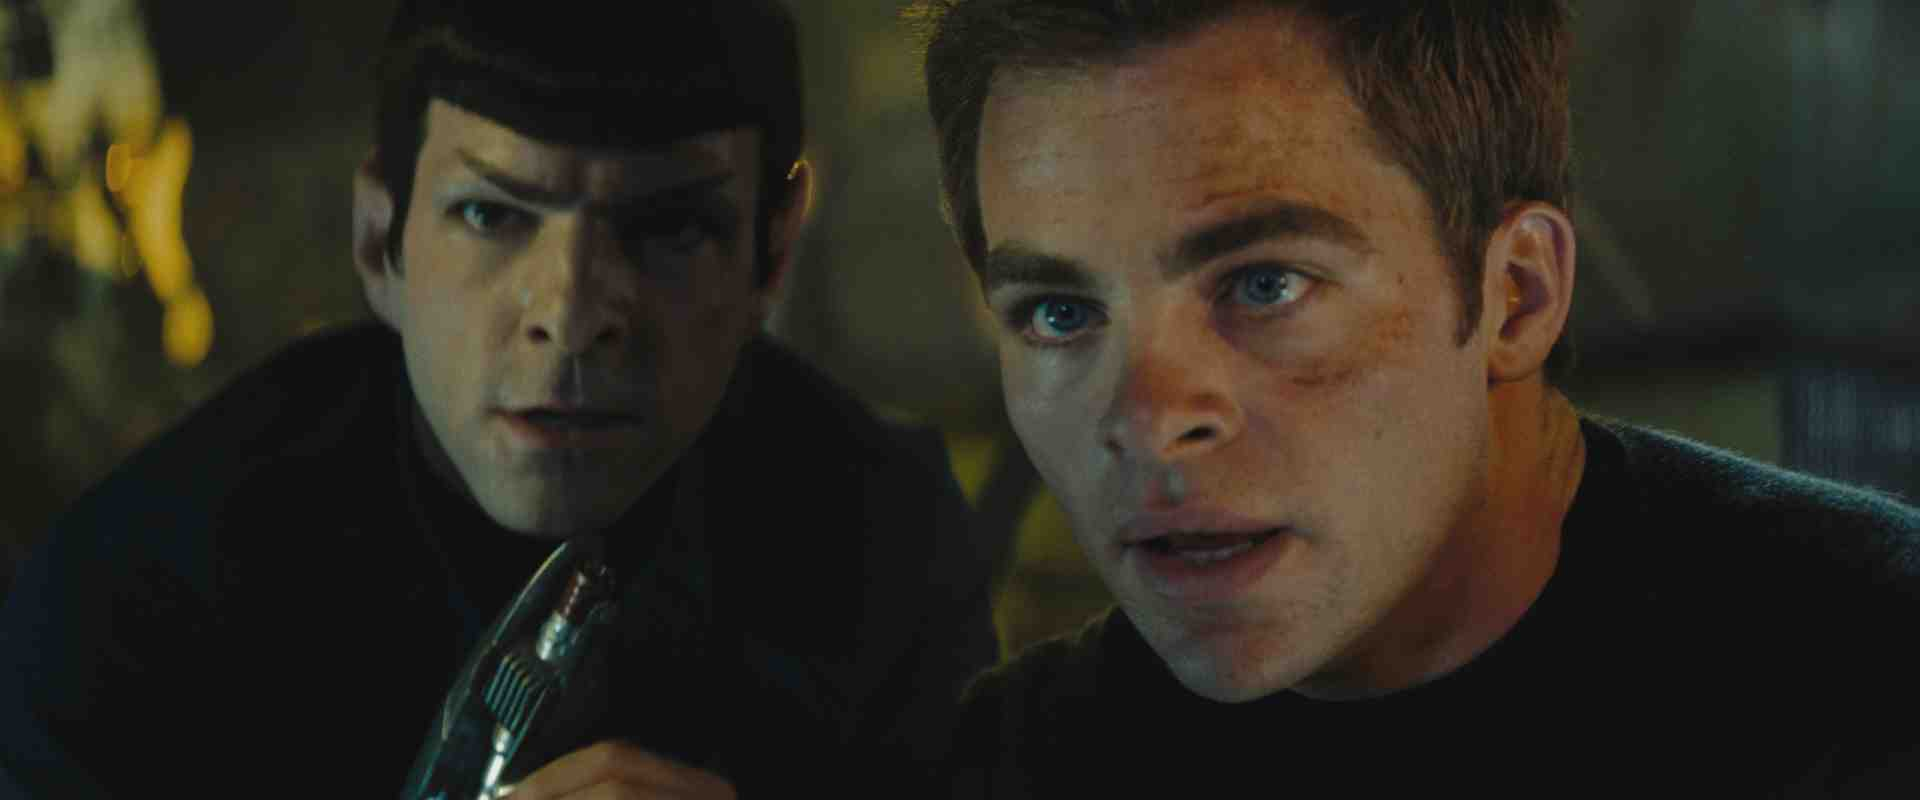 Spock (Zachary Quinto) and James T. Kirk (Chris Pine)